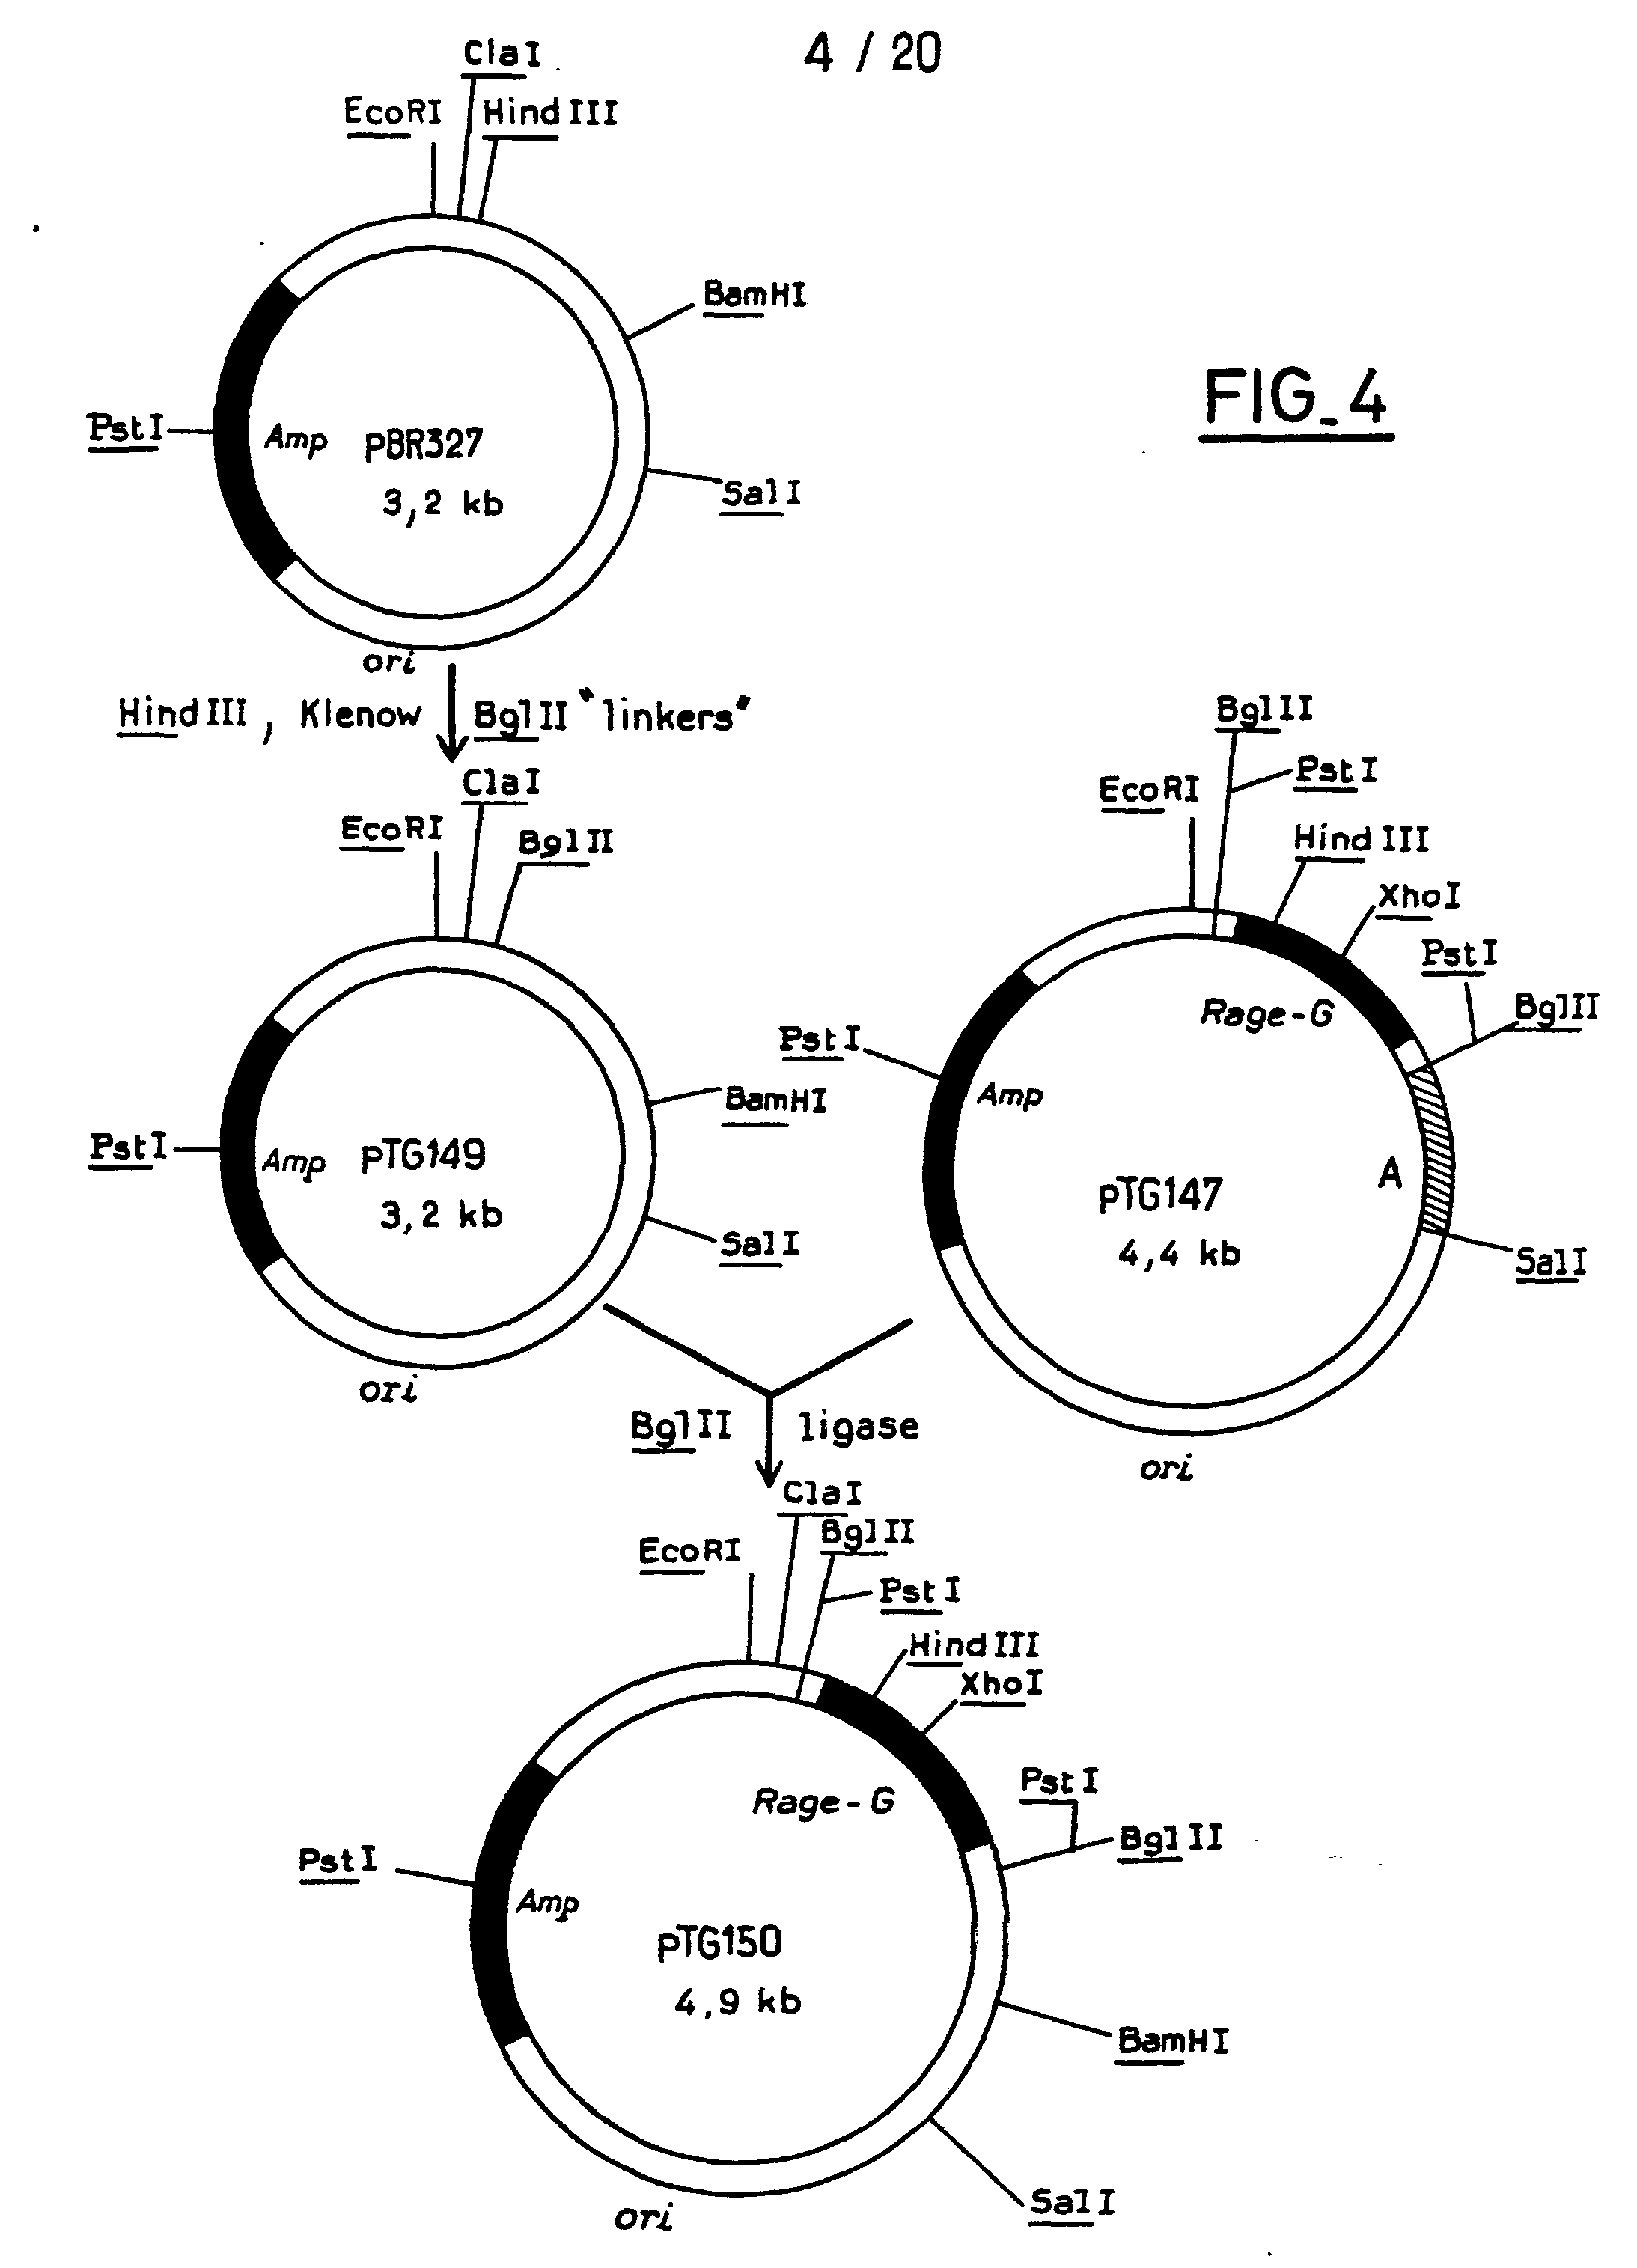 eukaryotic vectors for expression of proteins Wide-range integrative expression vectors for fungi,  novel microbial and eukaryotic expression systems  production of recombinant proteins.